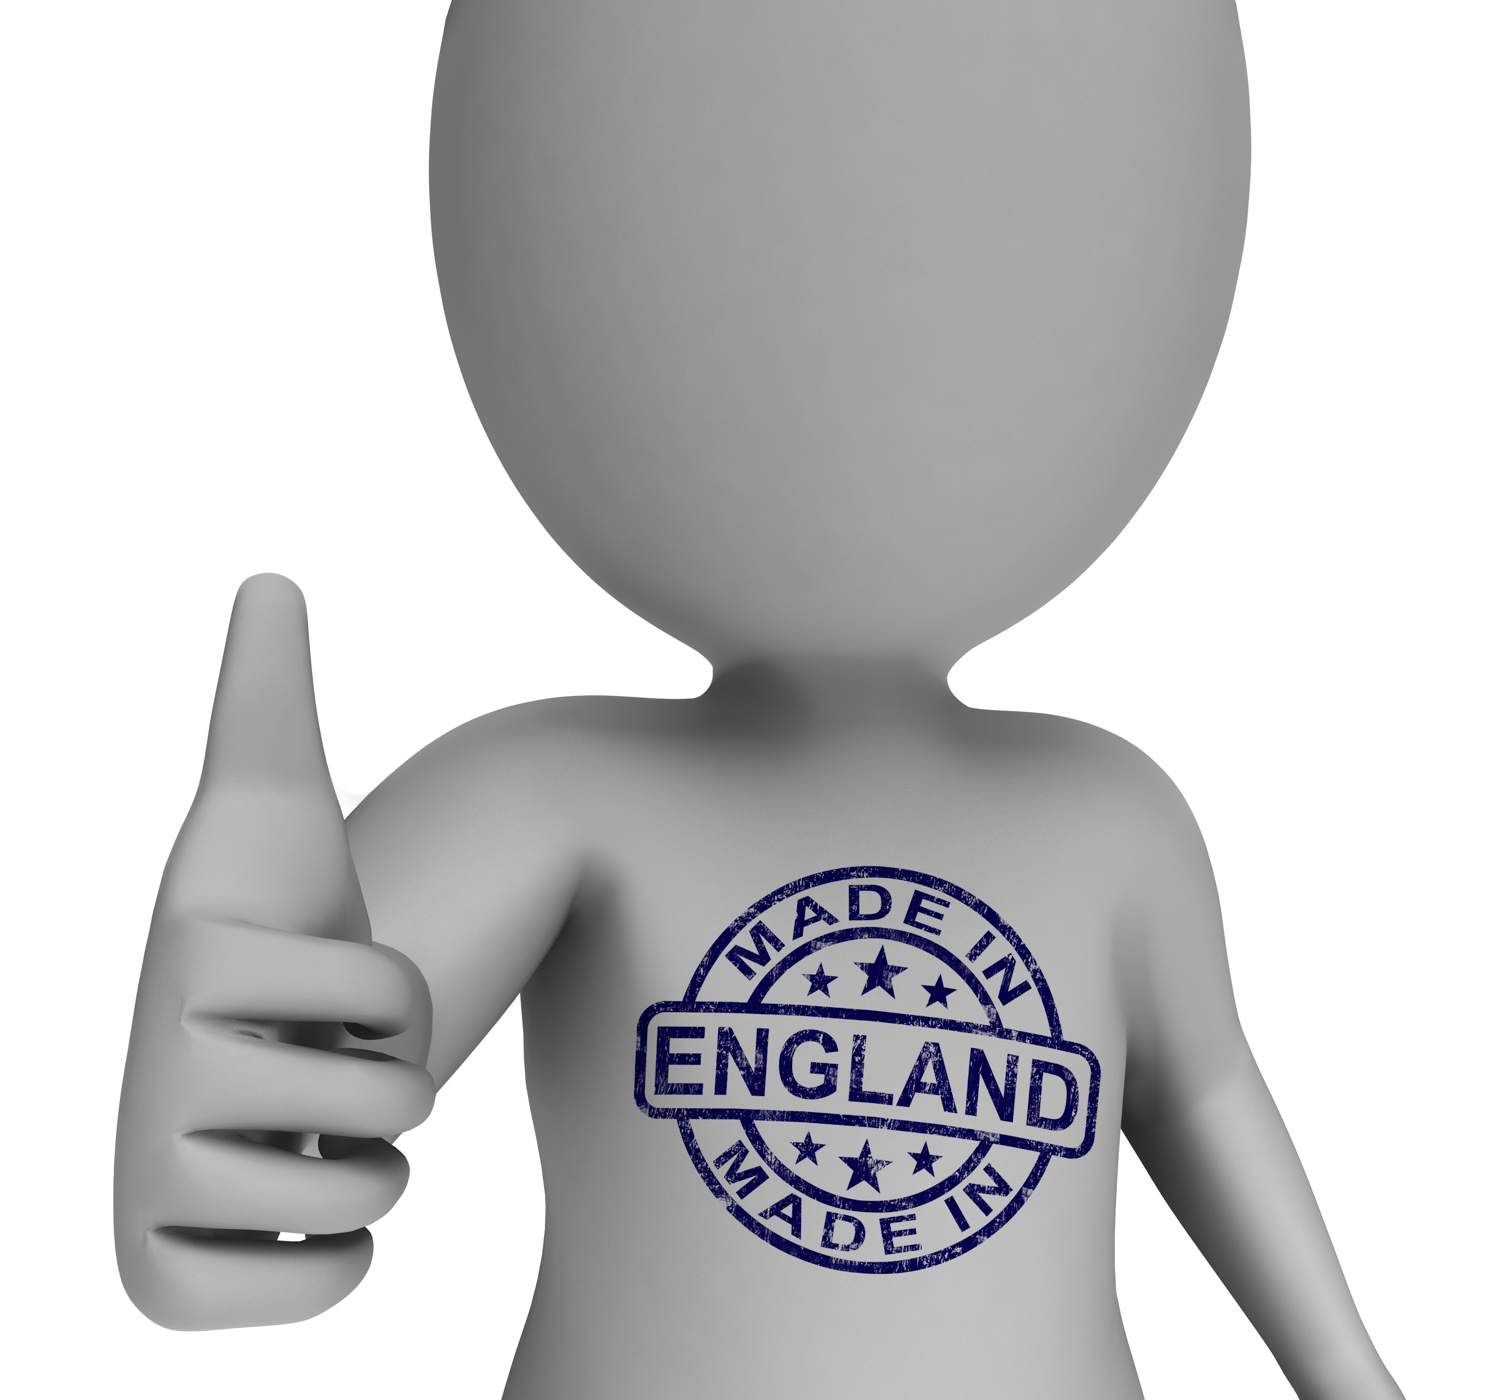 Made In England Stamp On Man Shows English Products Approved, Manufactured, Stamp, Products, Product, HQ Photo